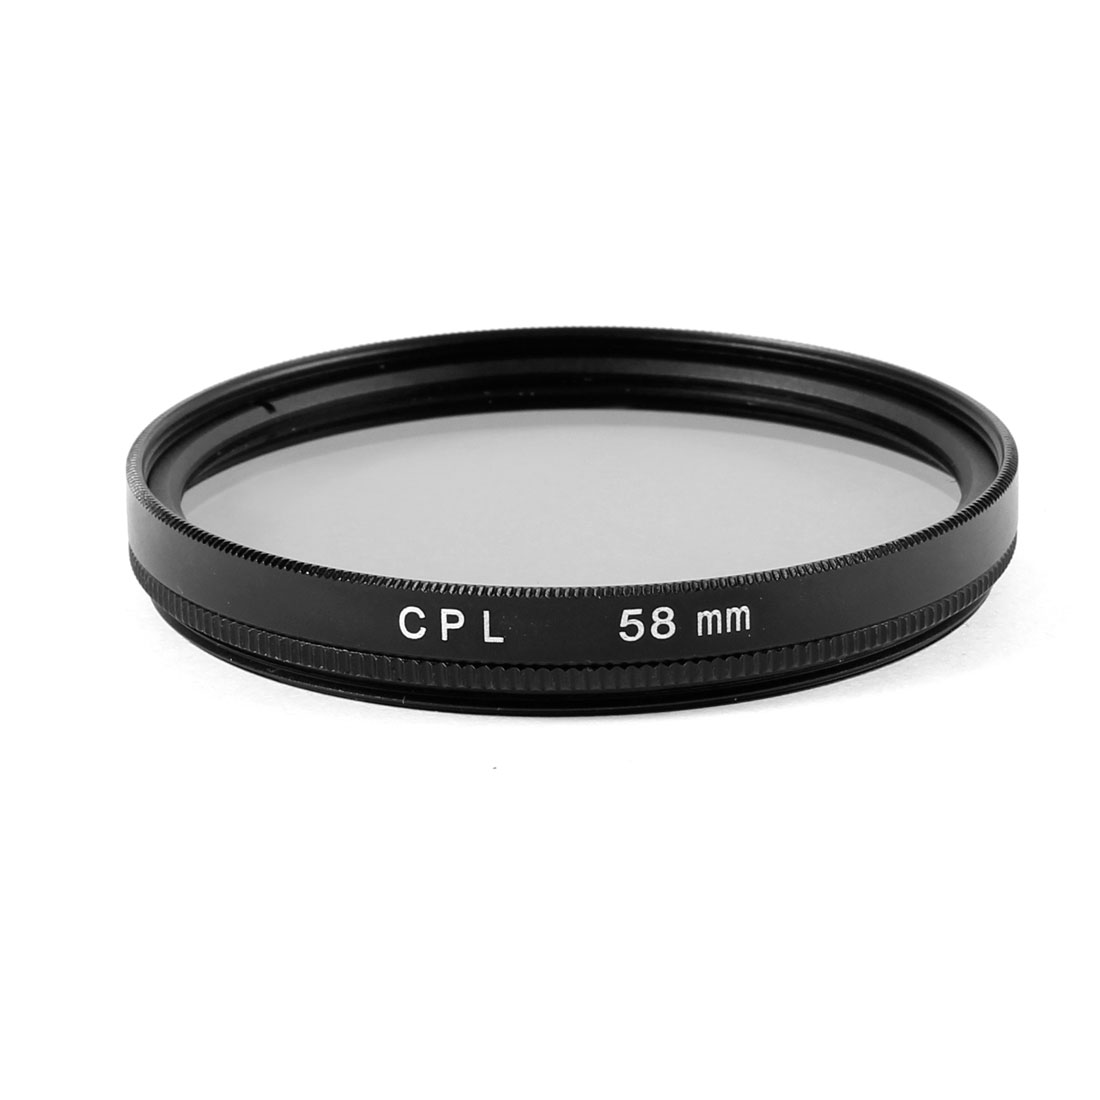 58mm Circular Polarizing CPL Lens Filter Protector Black for Digital Camera